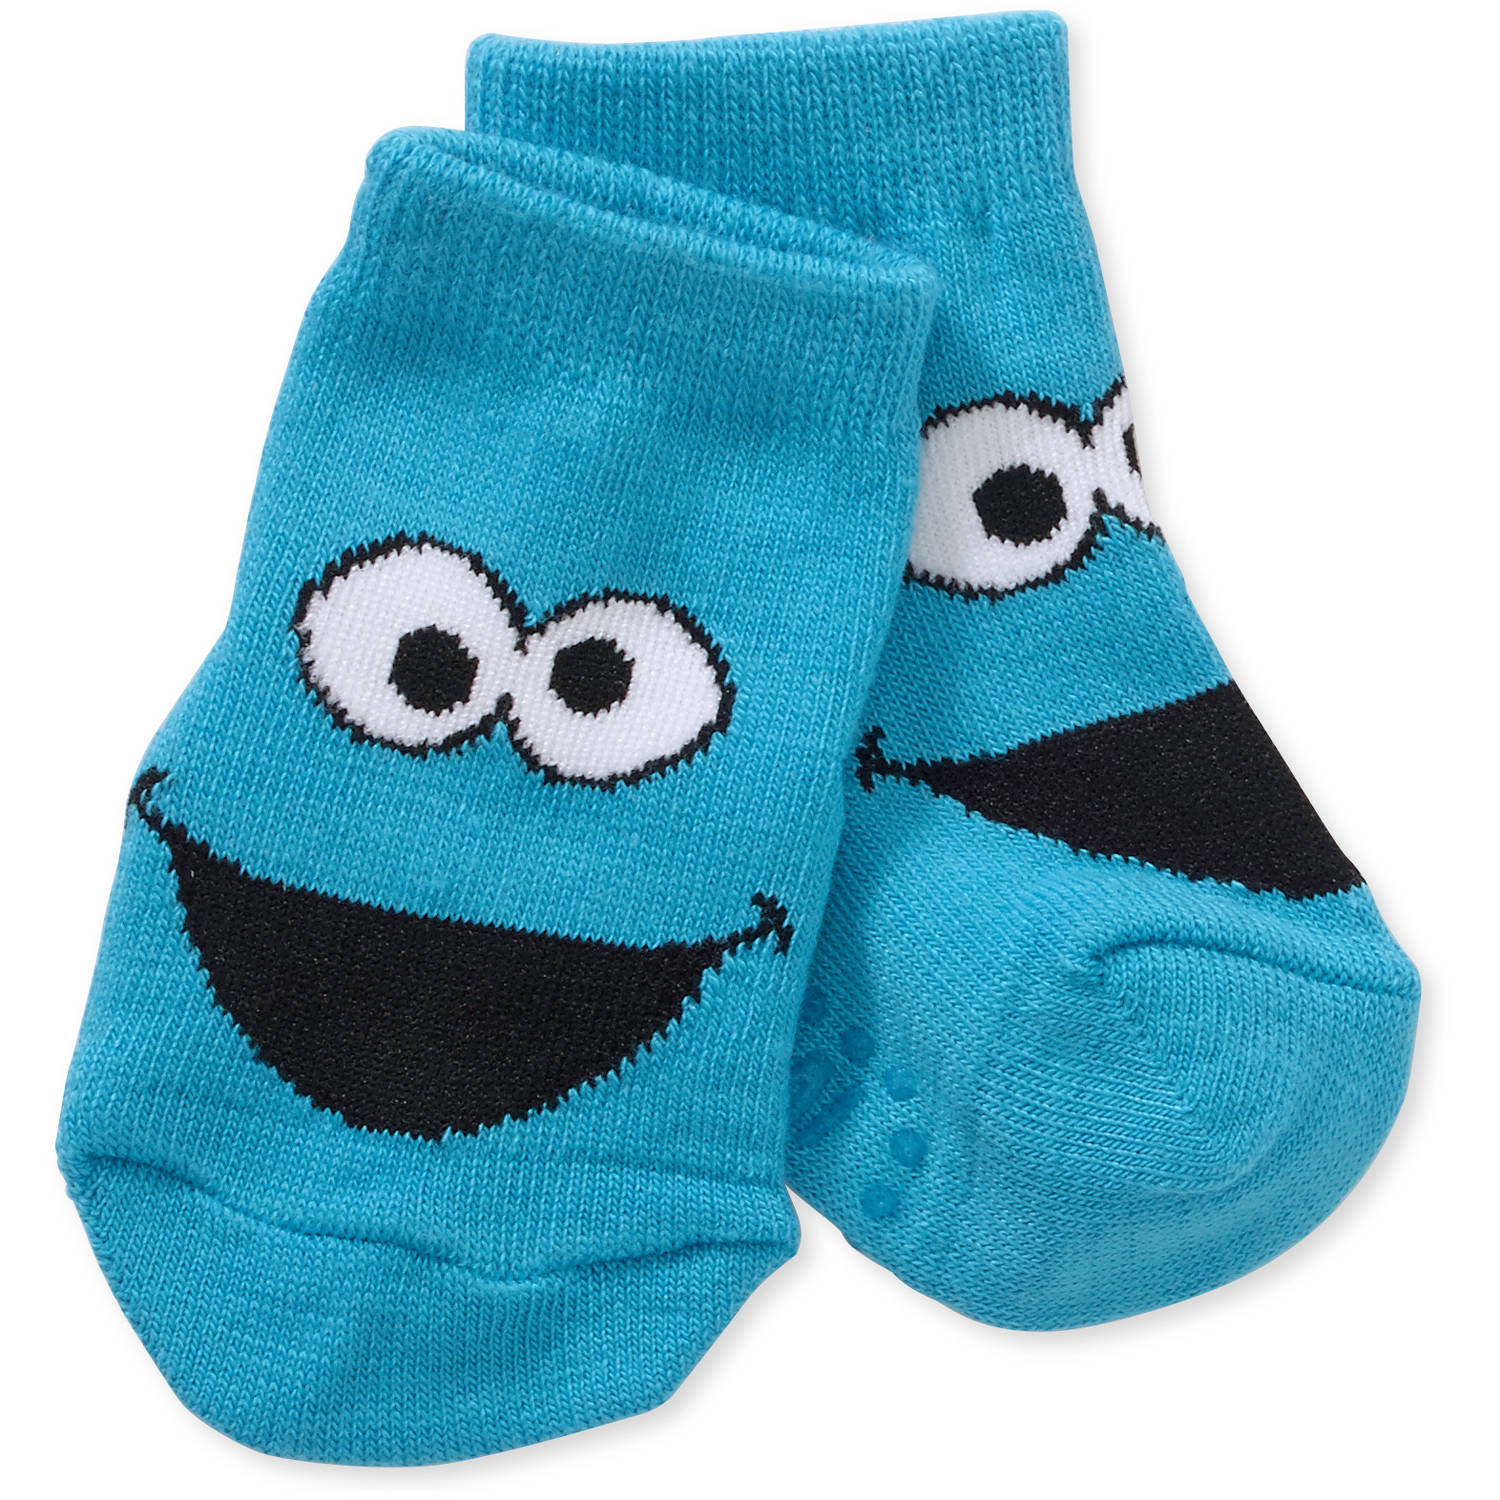 Sesame Street Elmo Newborn Baby Boy Quarter Socks, 3-Pack